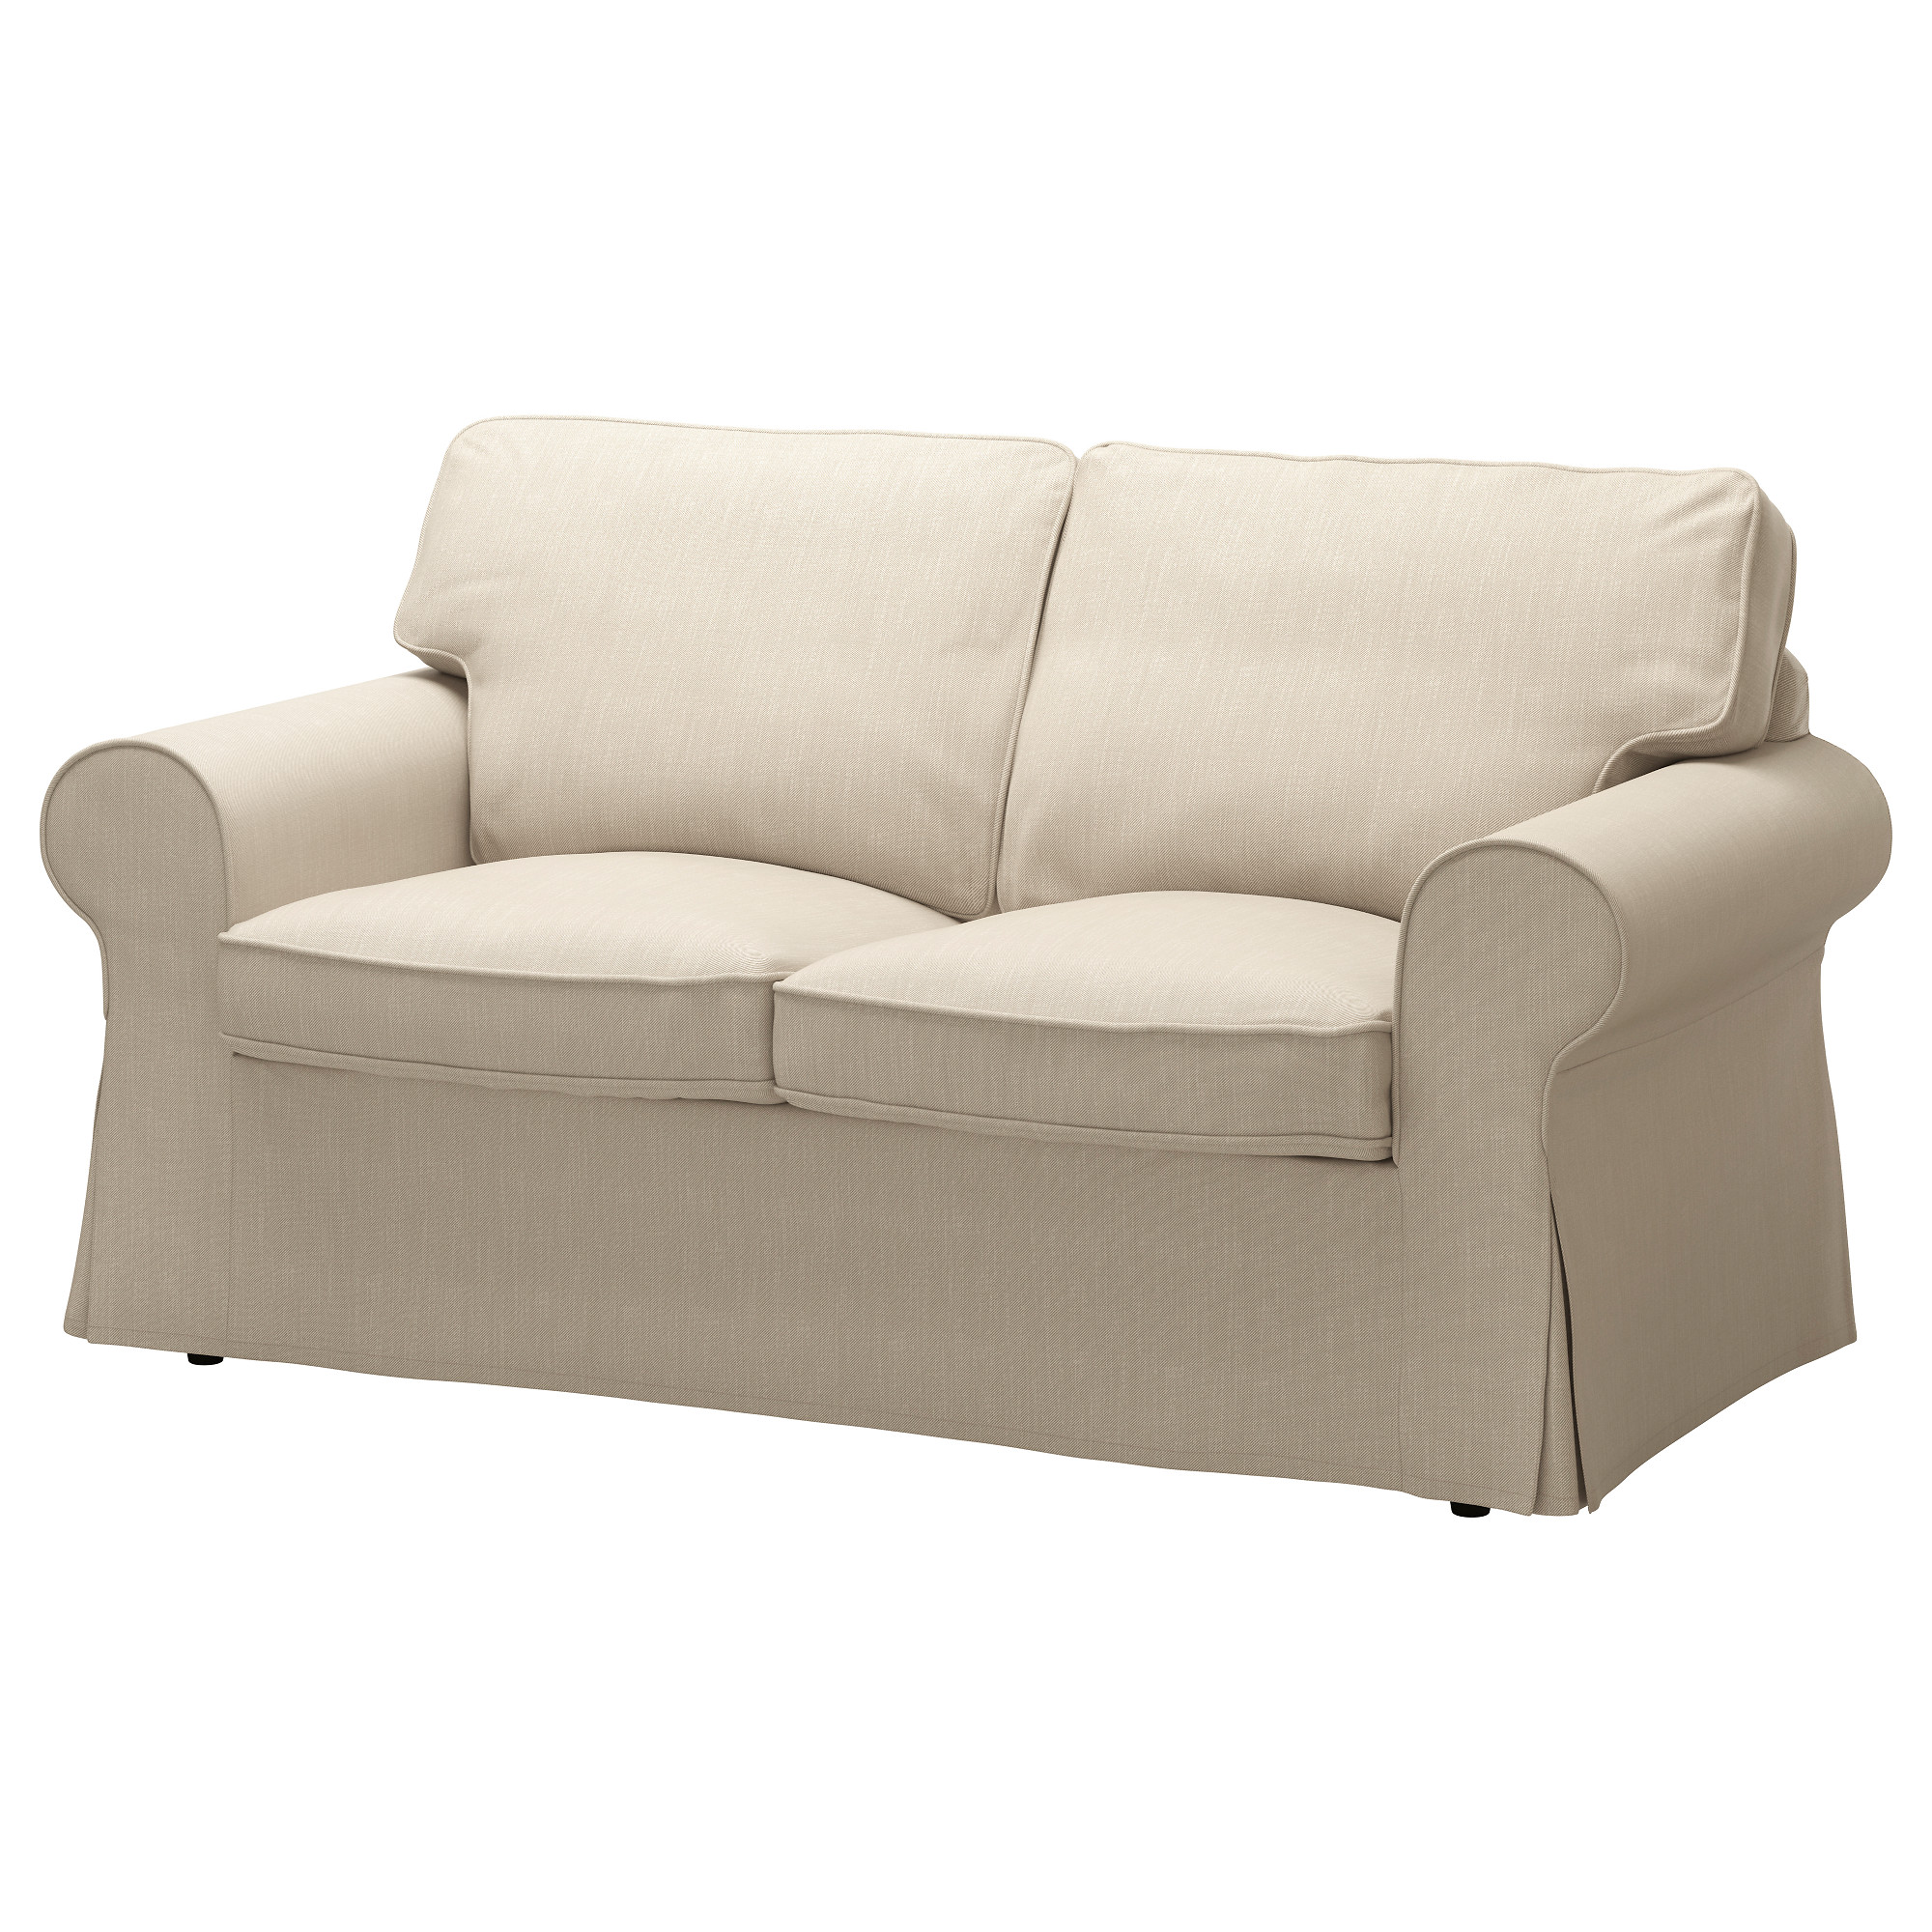 Furniture and Home Furnishings Ikea loveseat, Loveseat